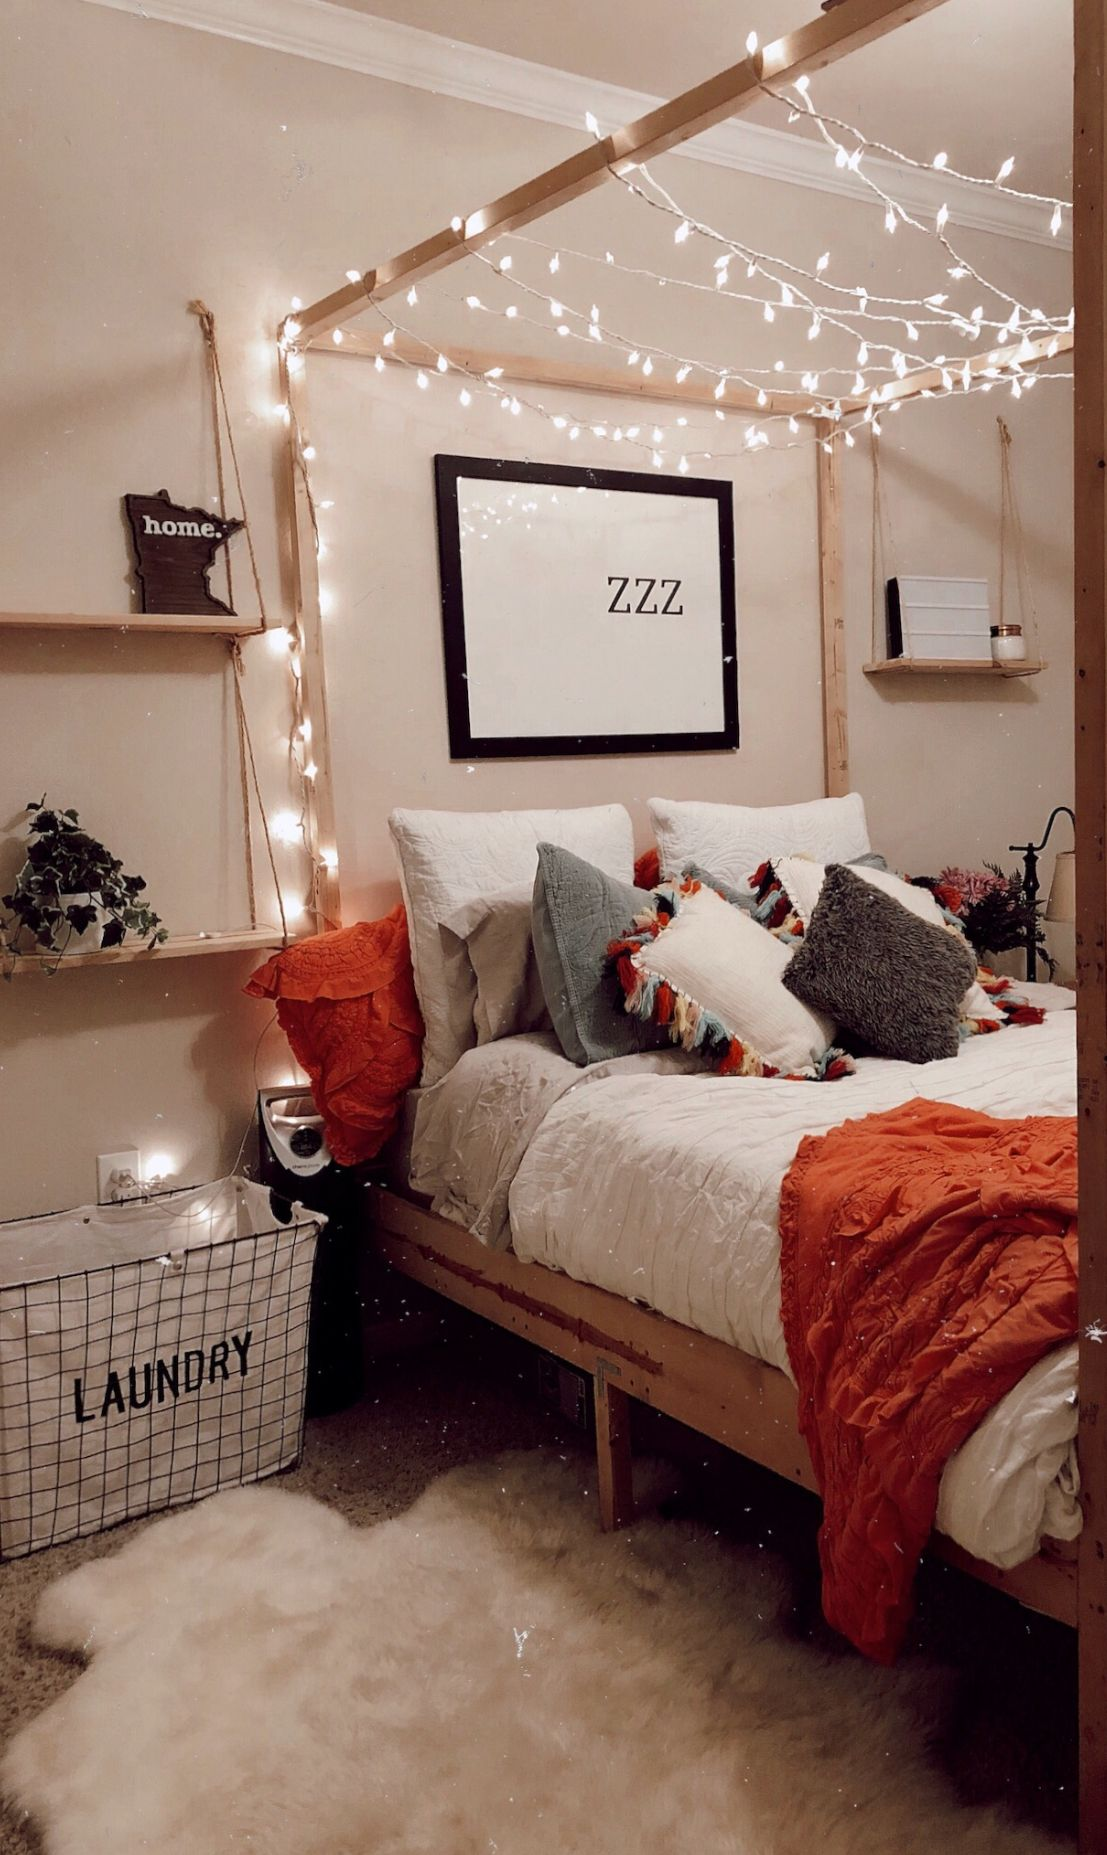 Teen Girl Room Design: Pin By Elizabeth Ogden On Devyn's Room